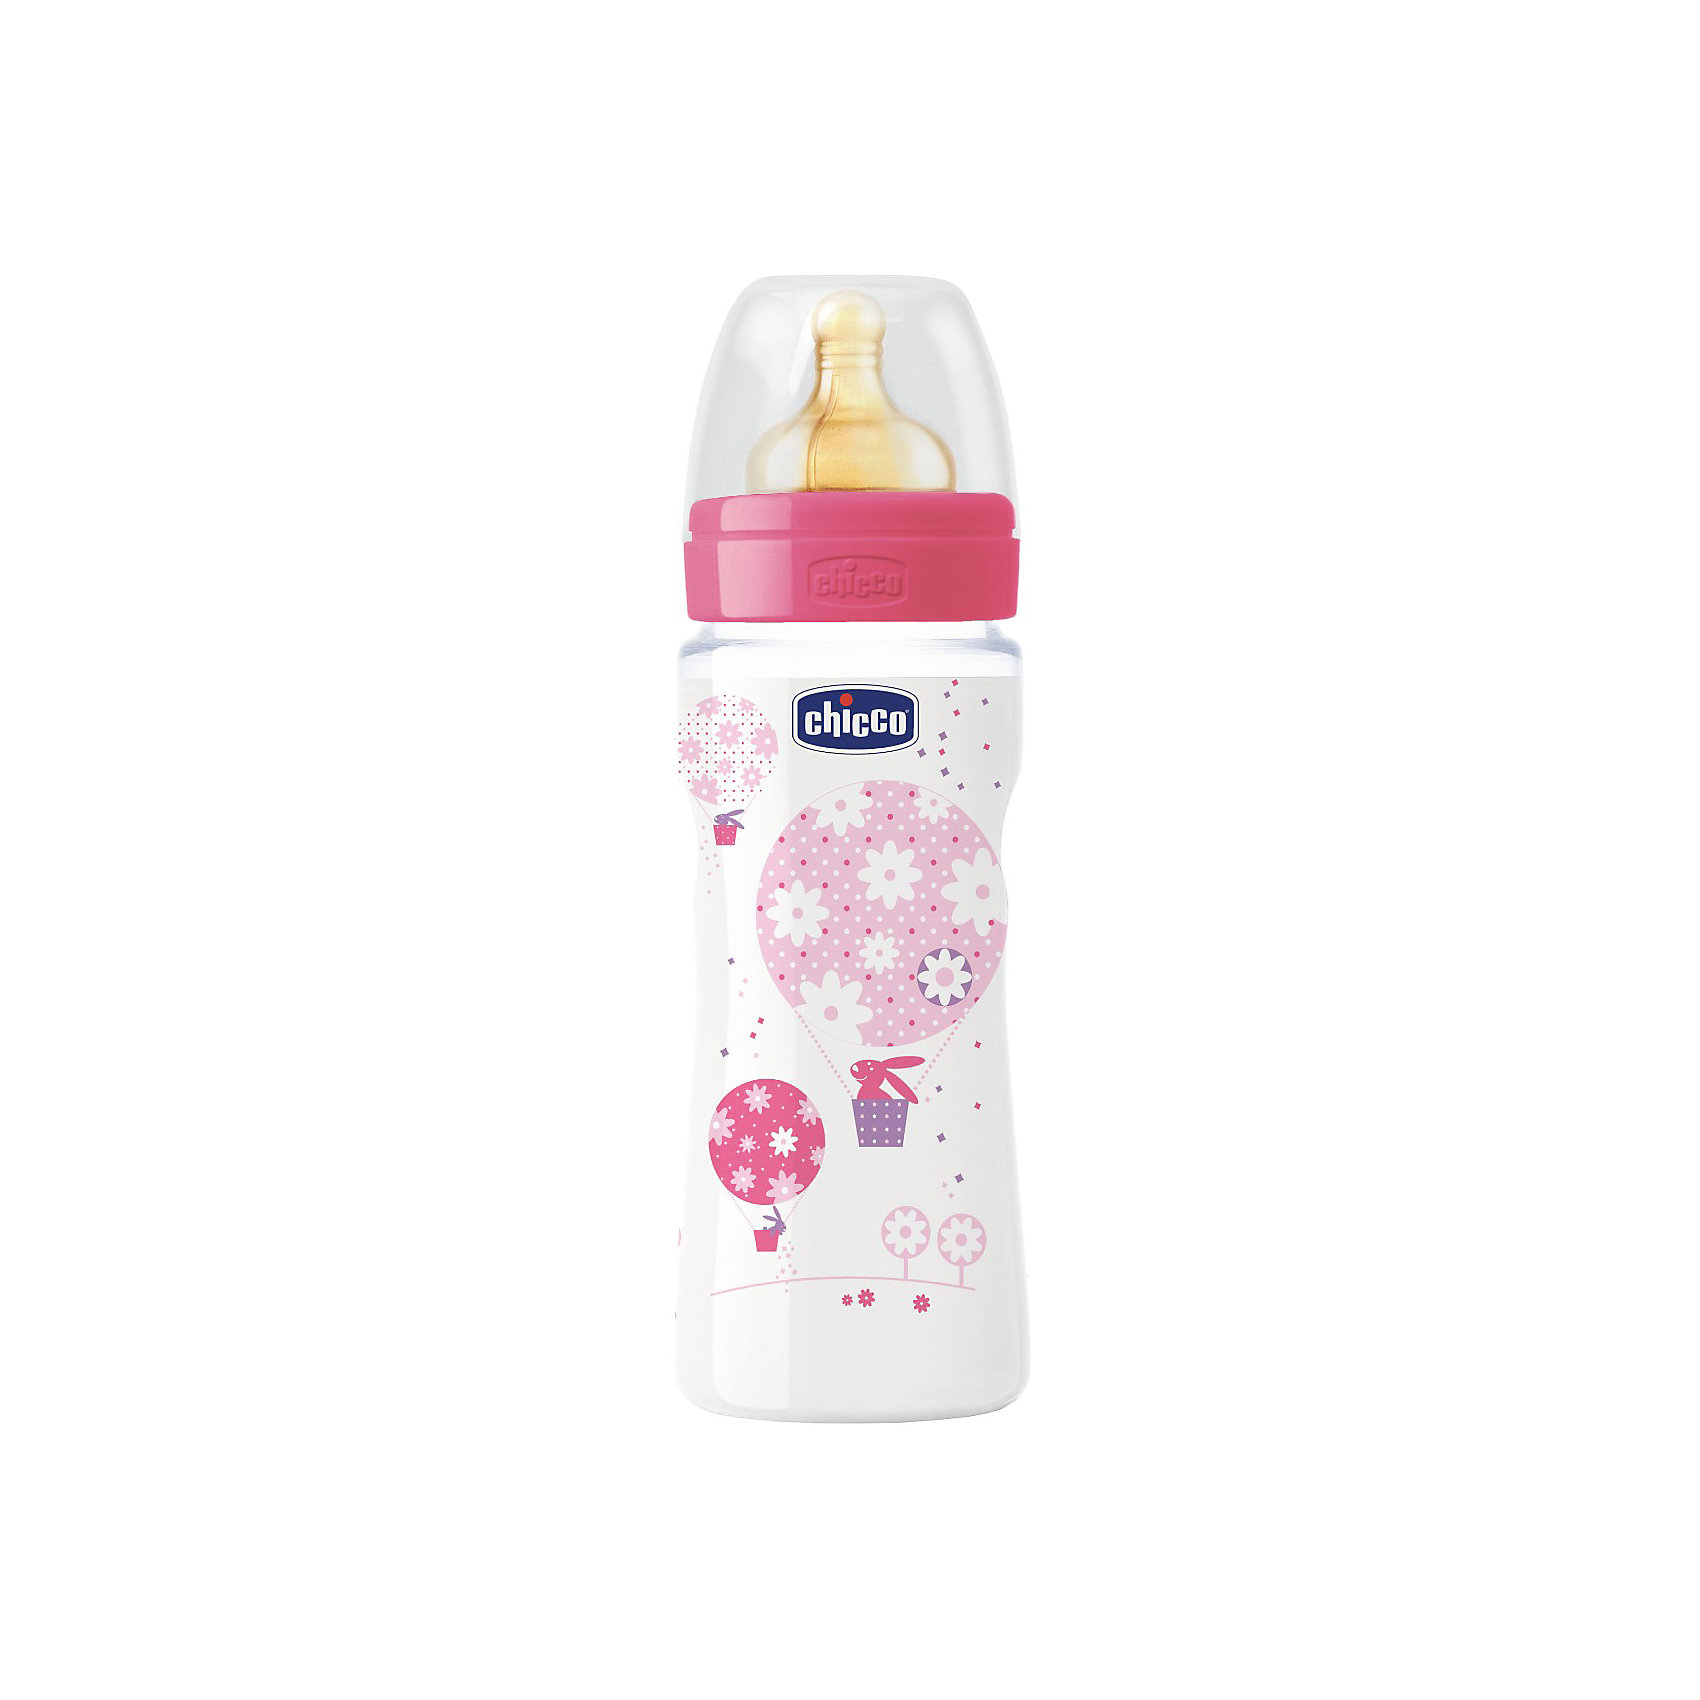 цена на CHICCO Бутылочка Well-Being Girl 4мес.+, лат.соска, РР, 330мл., CHICCO